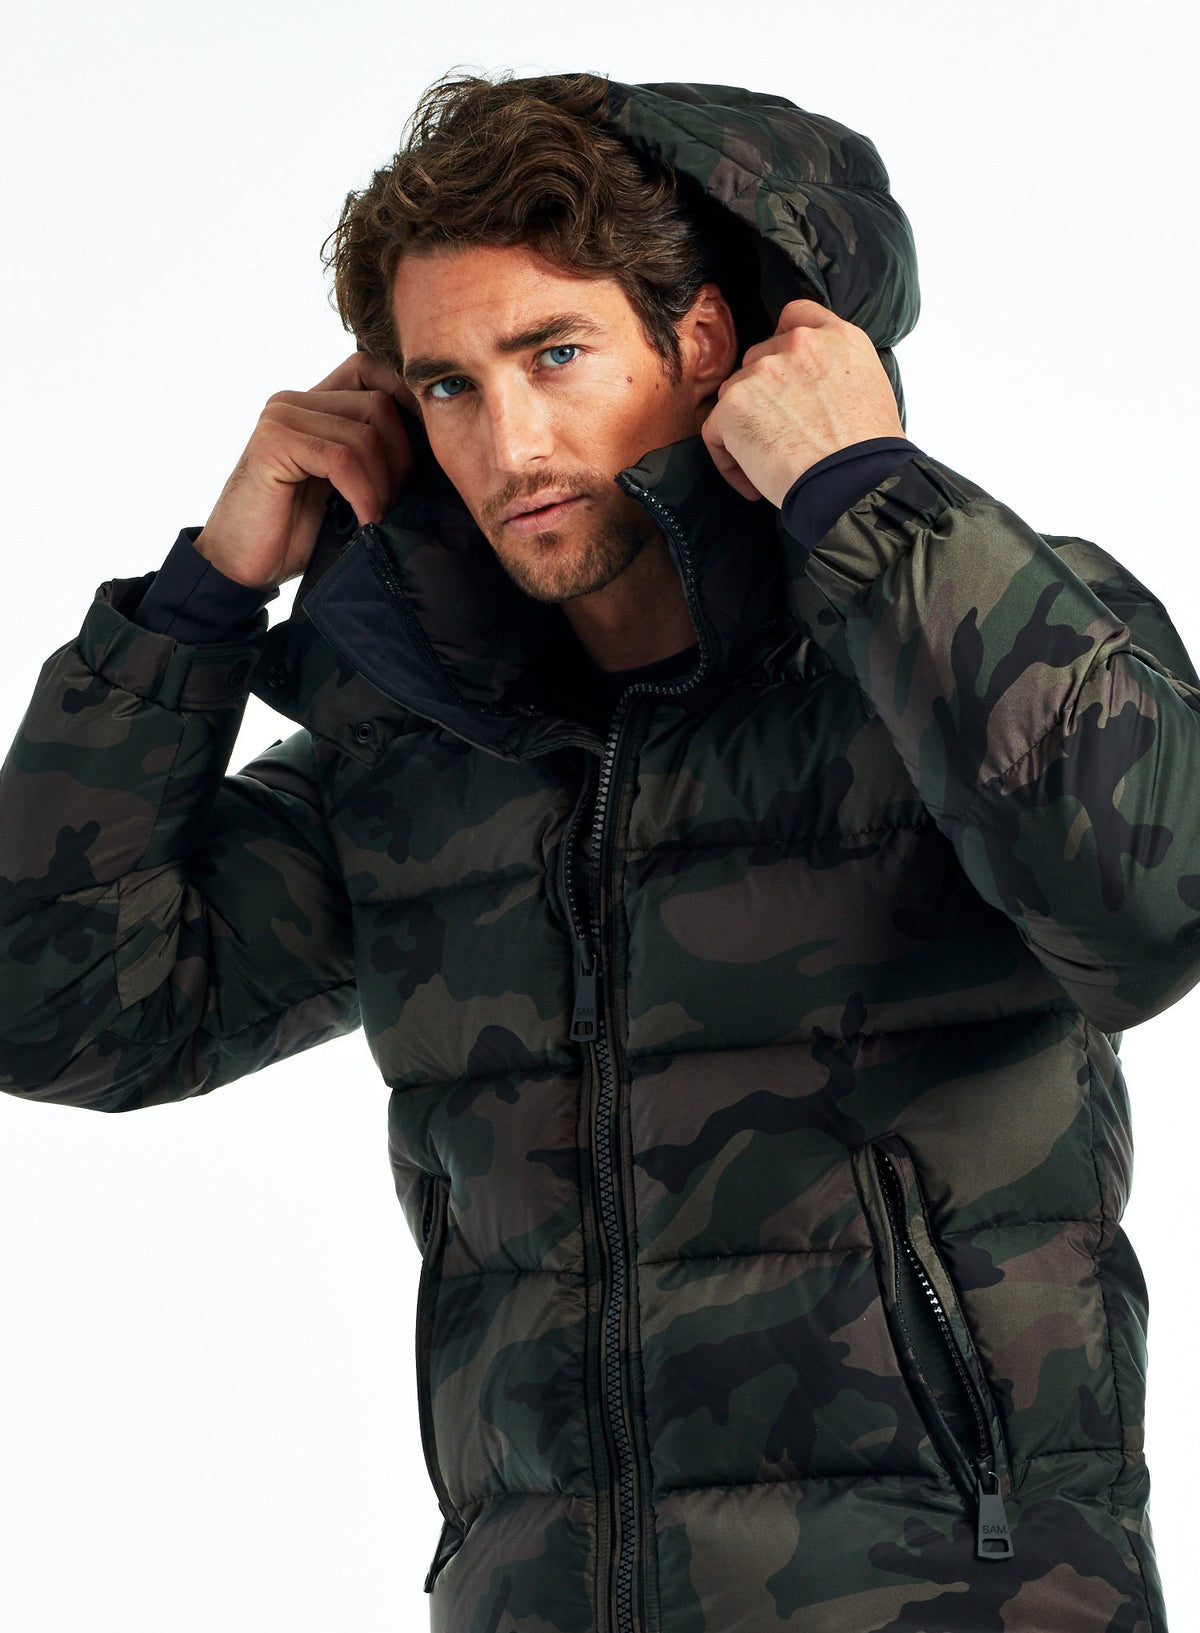 CAMO GLACIER CAMO GLACIER - SAM. New York Sam nyc jacket